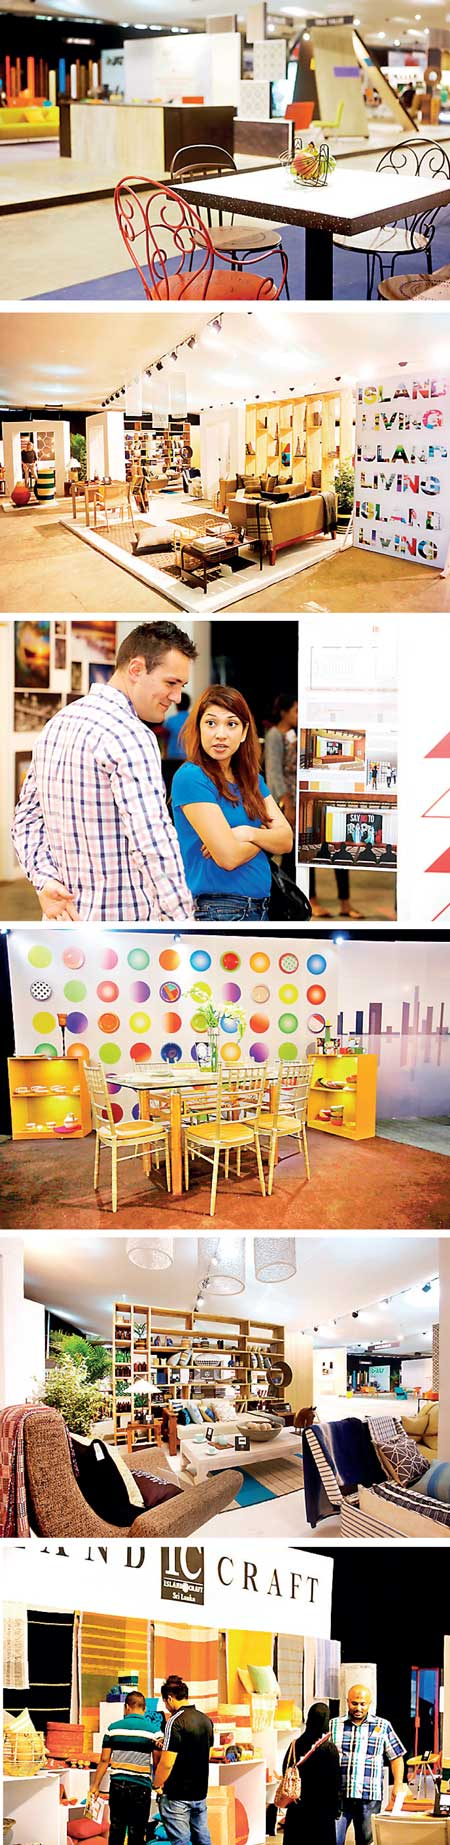 The Recently Concluded Sri Lanka Design Festival Interior Design Exhibition  2015 Was Hailed As A Powerful Platform By The Local Interior Design  Industry.